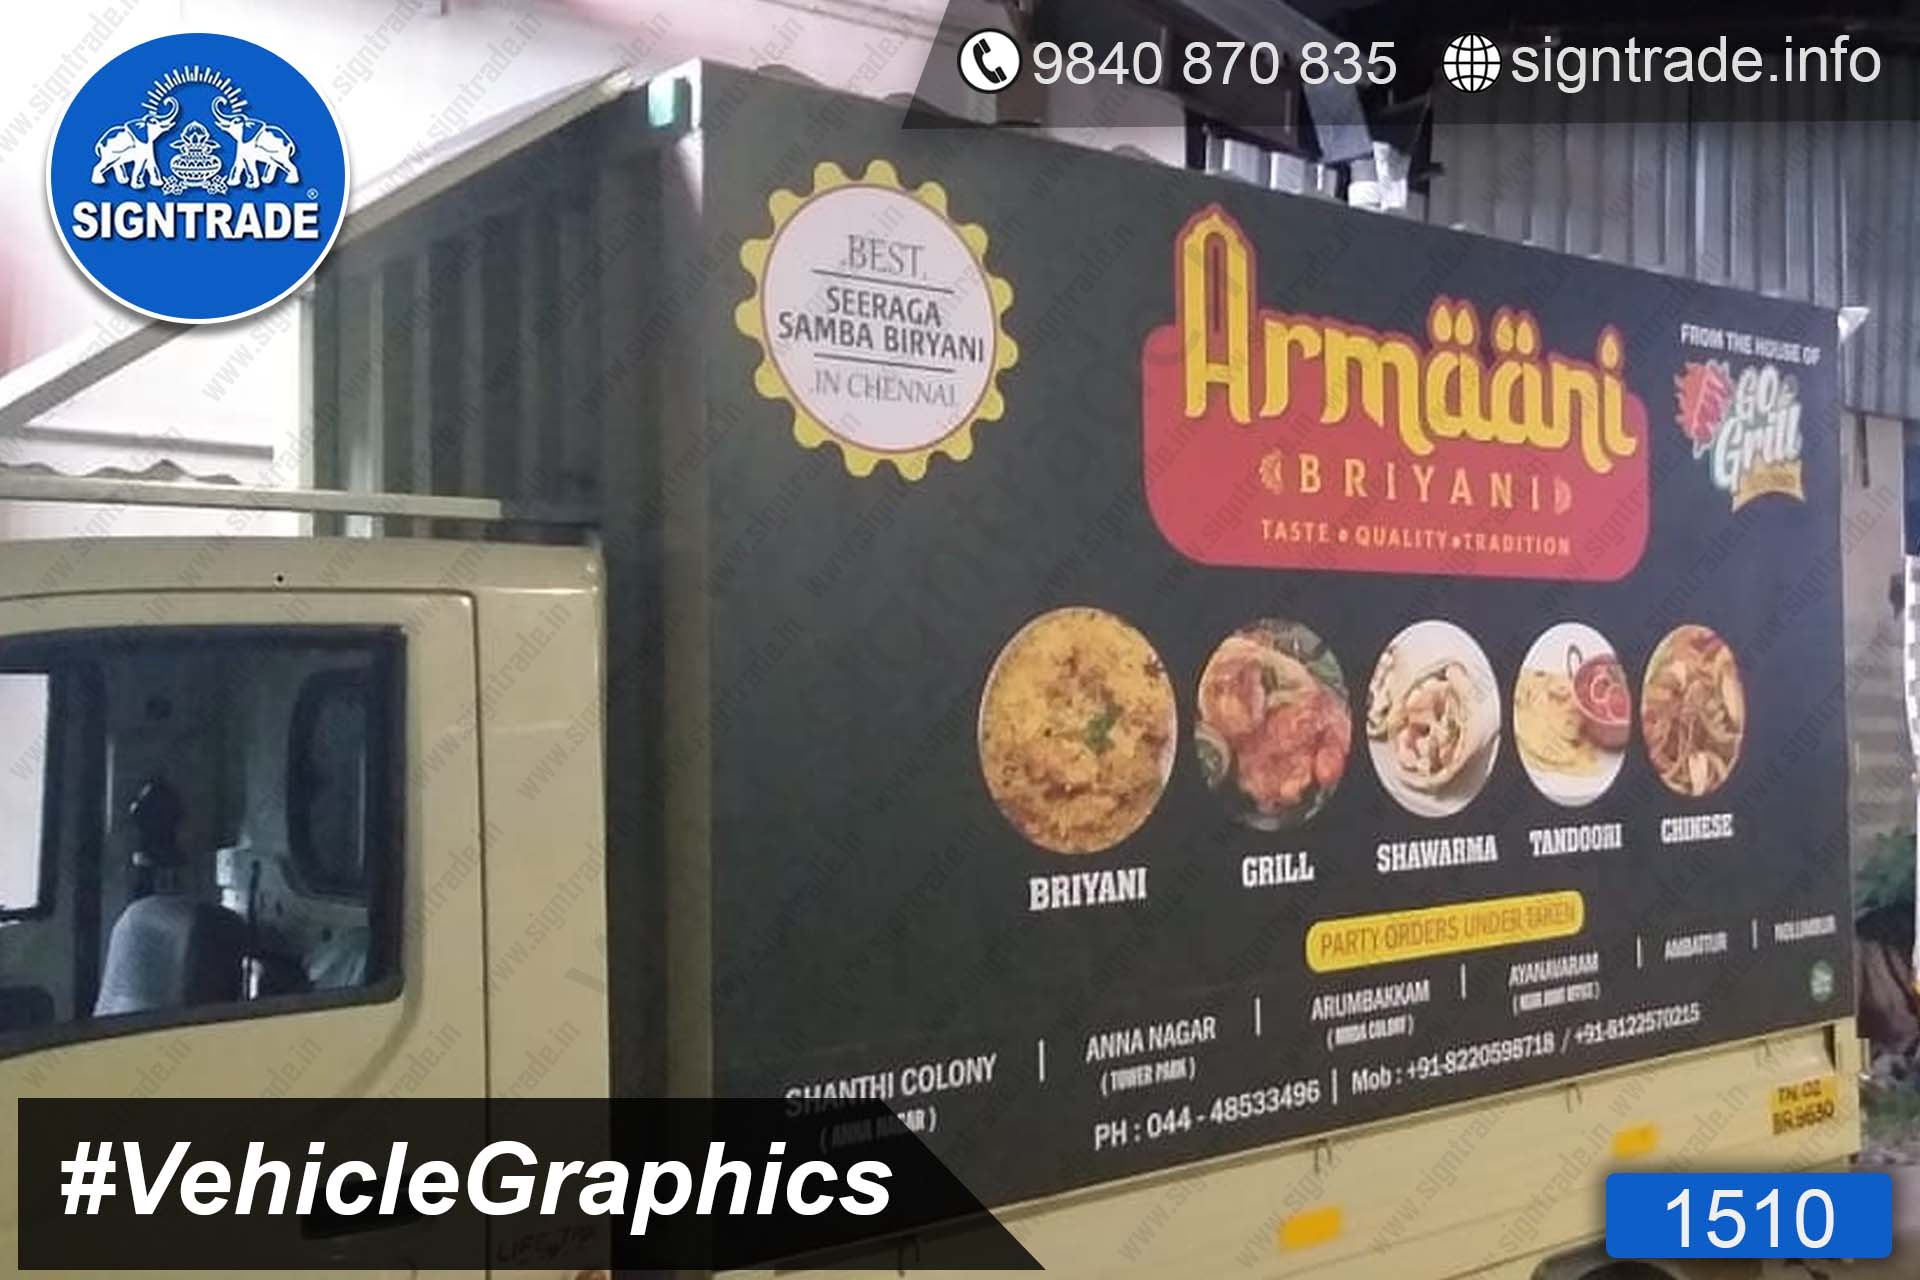 Armani Biryani, Chennai - SIGNTRADE - Vinyl, Stickers, Van Graphics, Vehicle Graphics and Wraps Service Provider in Chennai